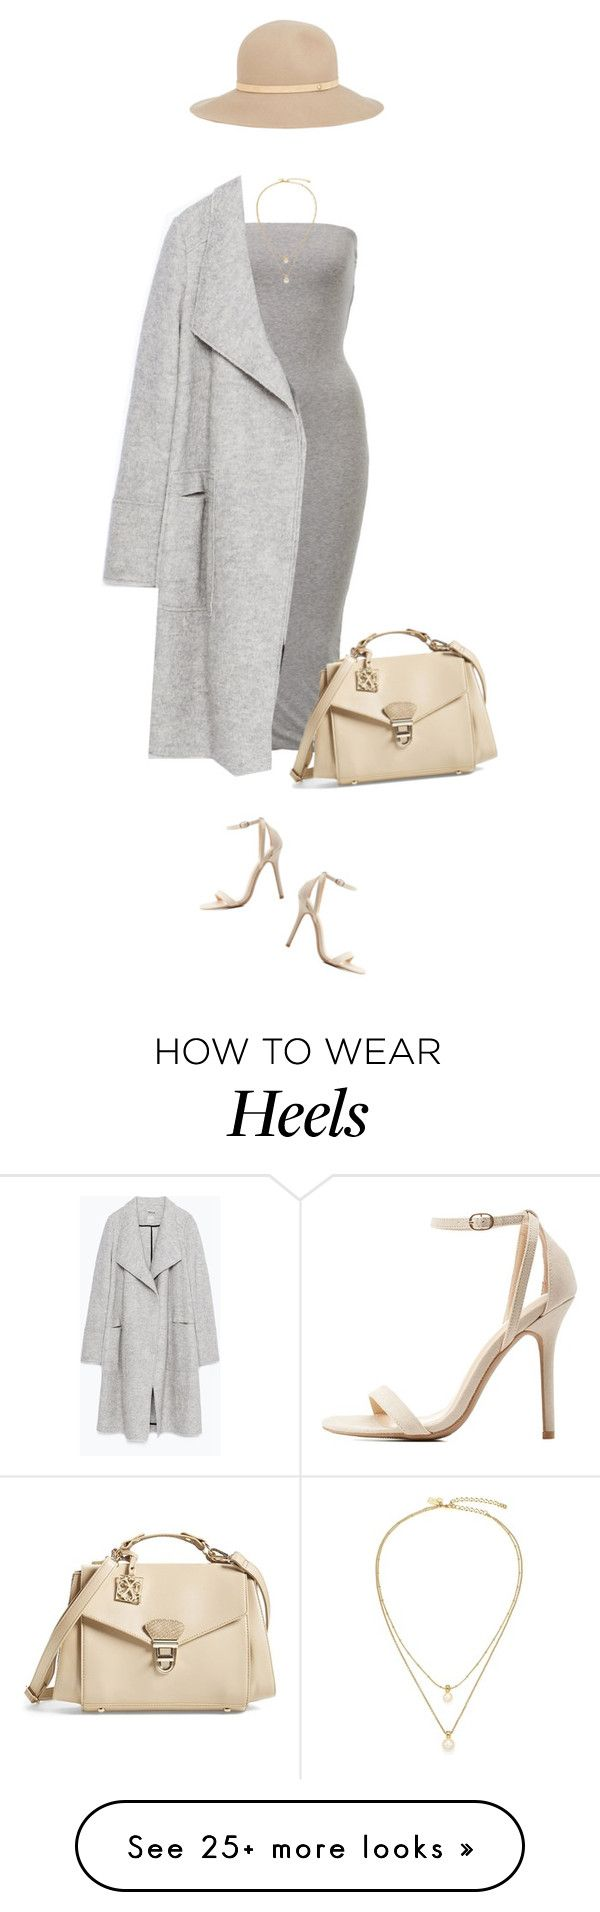 """""""Favorite combo at the moment !"""" by azzra on Polyvore featuring Zara, Charlotte Russe, CXL by Christian Lacroix, rag & bone, Kate Spade, classic, classy and nudeandgrey"""